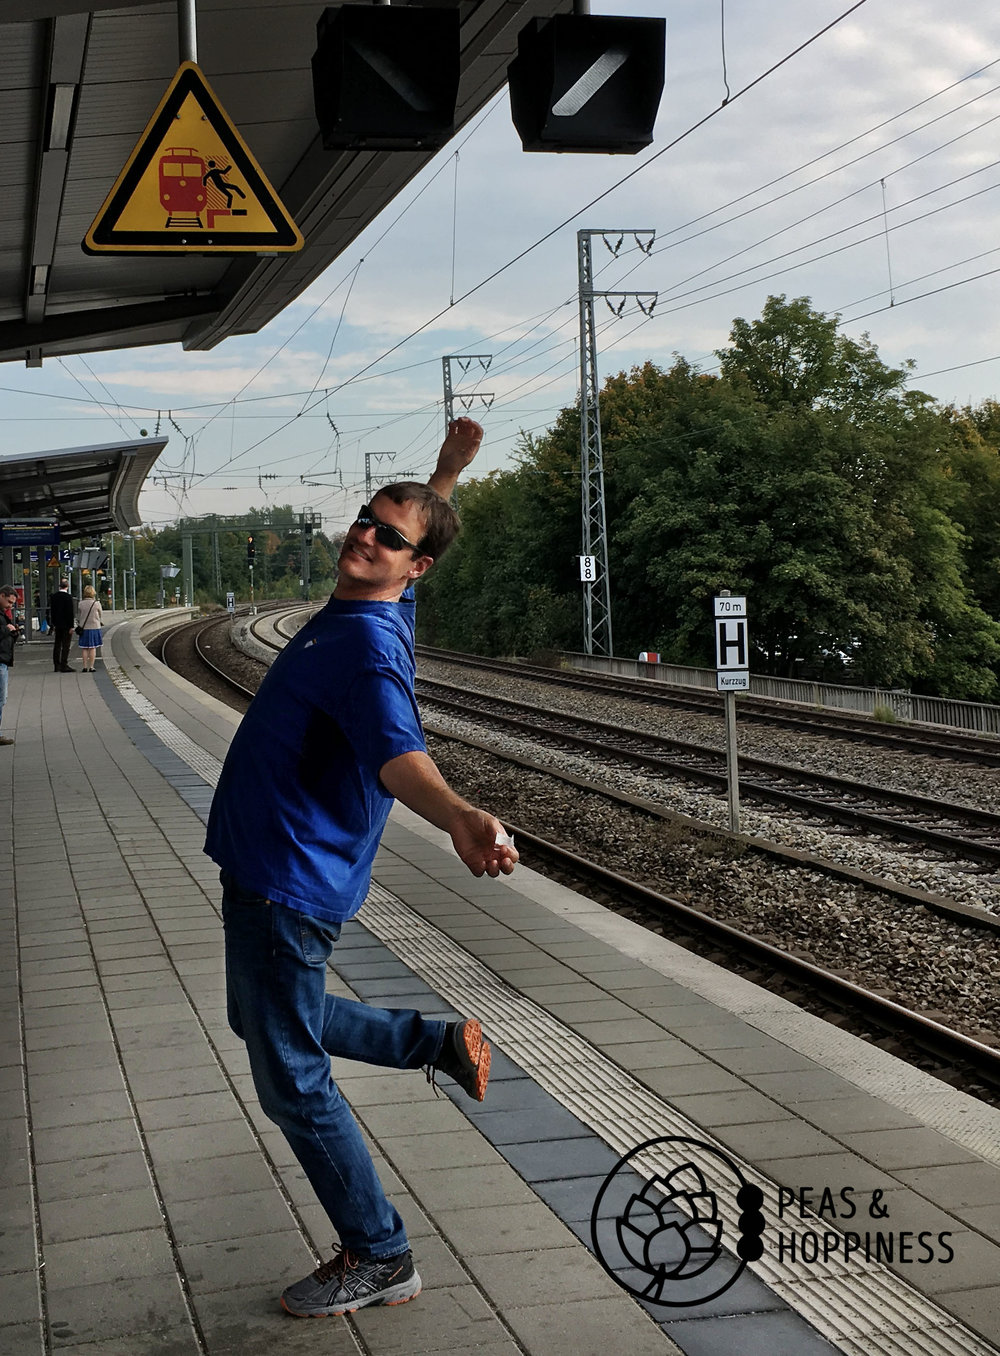 Caution: Do not fall onto the tracks! (Also note the German in a dirndl in the background - this was on our way to Oktoberfest!)